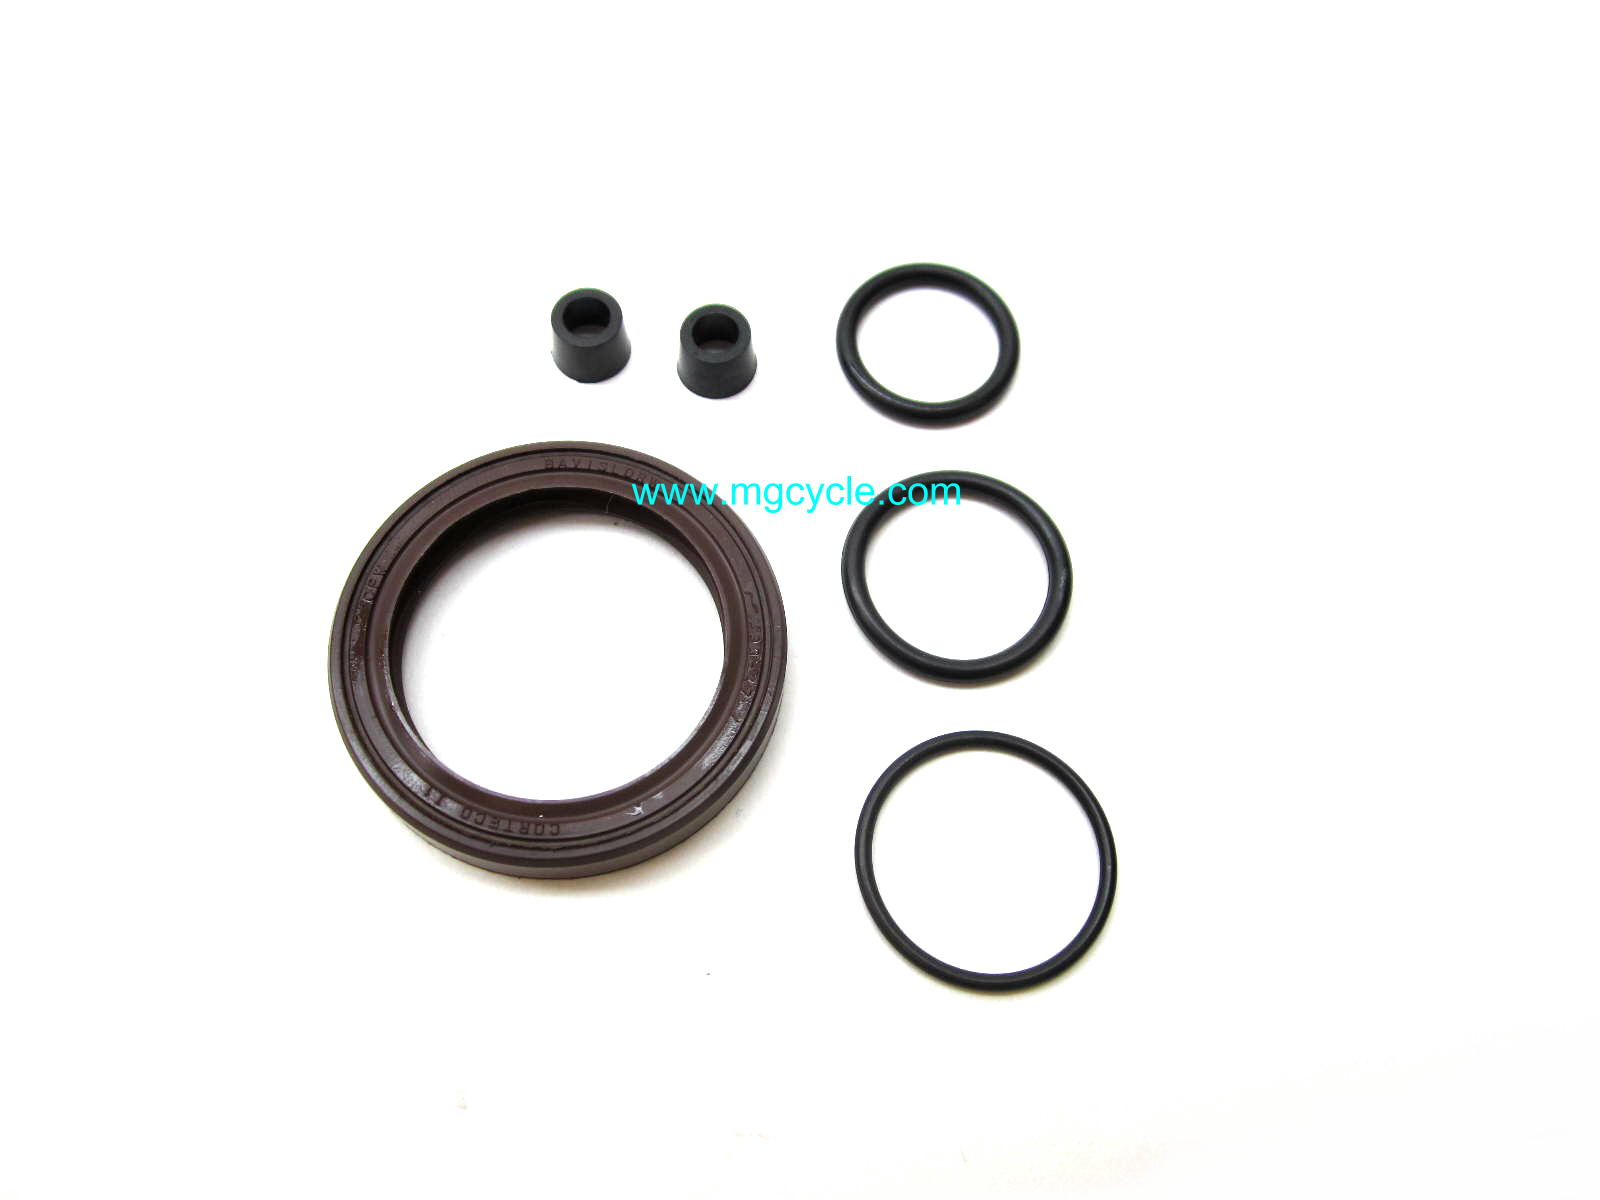 Supplemental Installation Kit for SD-TEC clutch kit